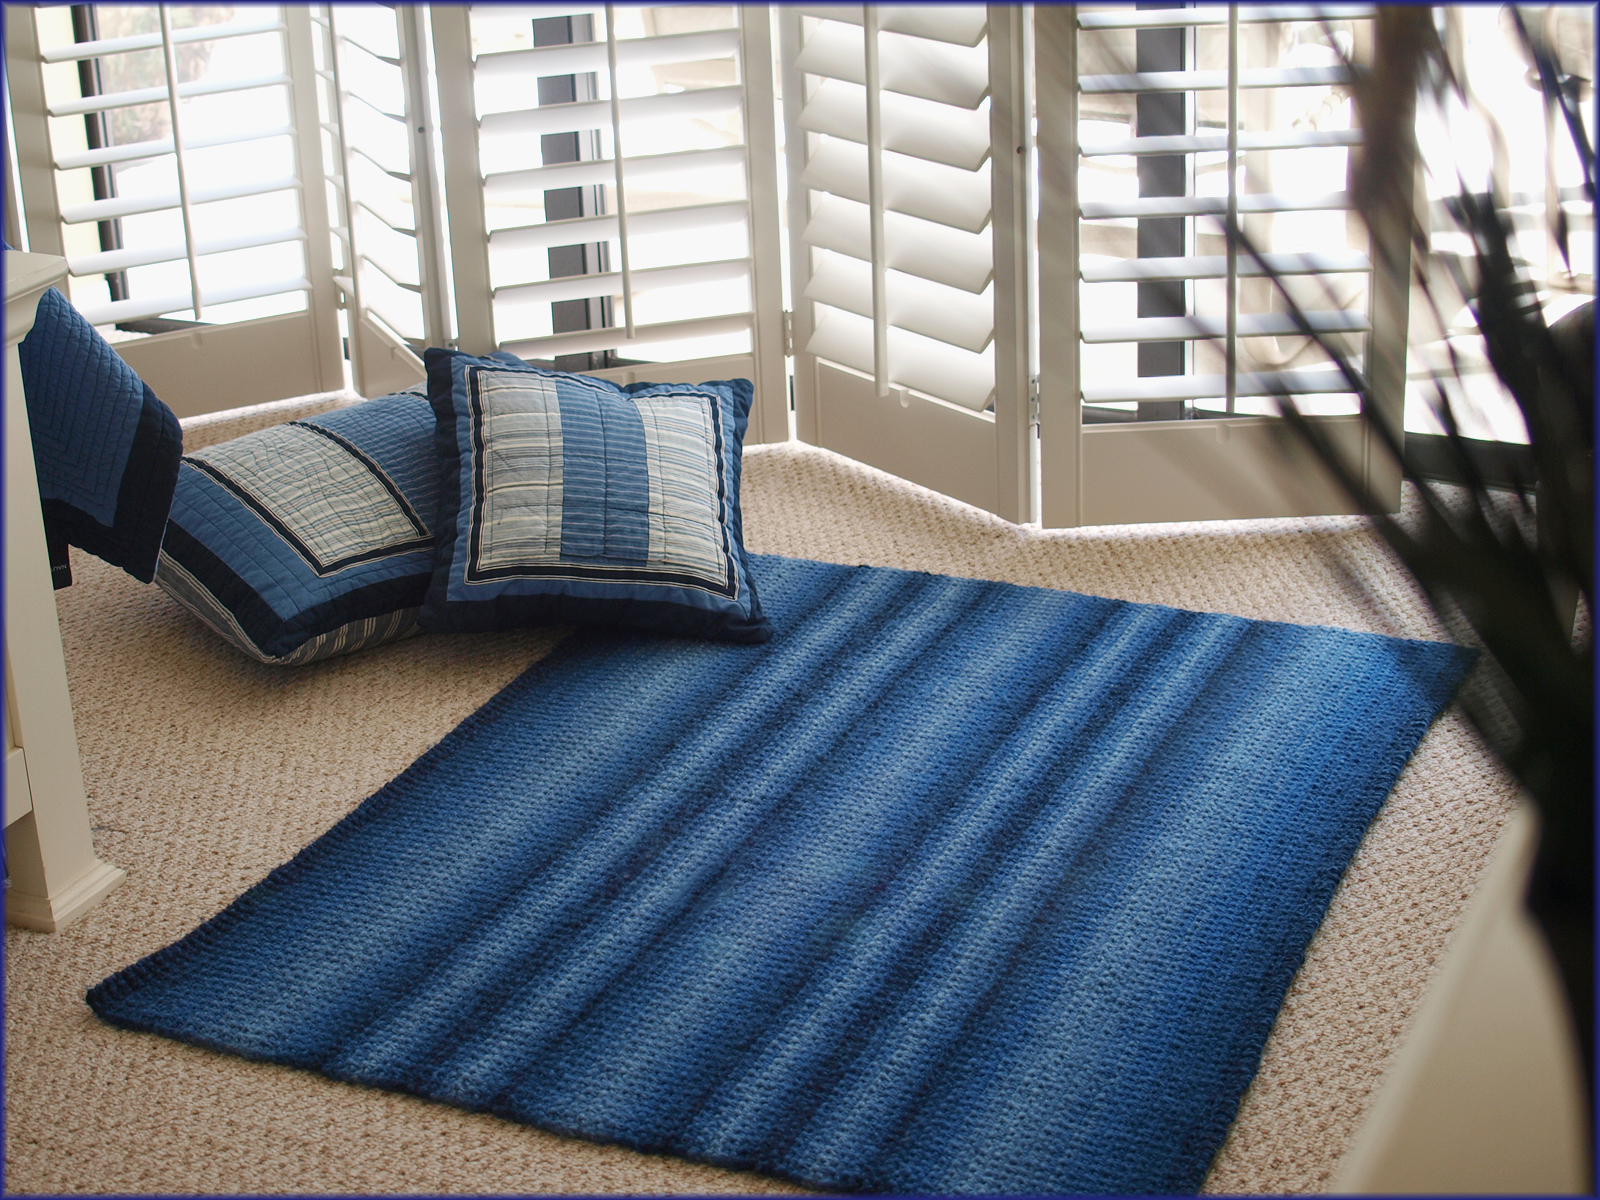 How To Knit A Rug Wyndlestraw Designs The Ocean Currents Rug Knitting Pattern